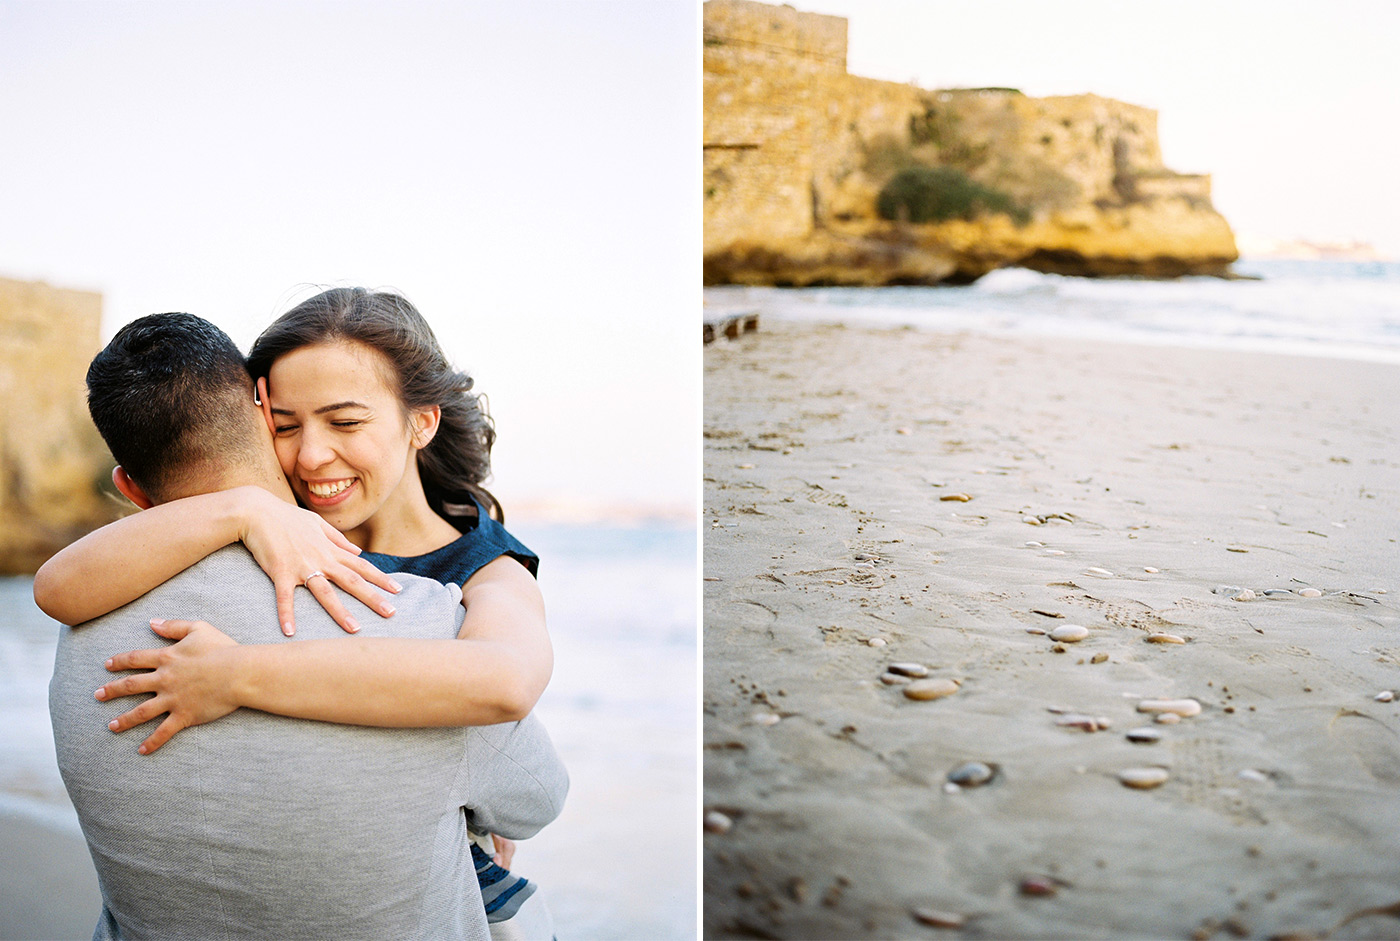 Castell de Tamarit Wedding Photography | Beach Wedding Proposal Photography | Film Photographer Spain | Kodak Portra 400